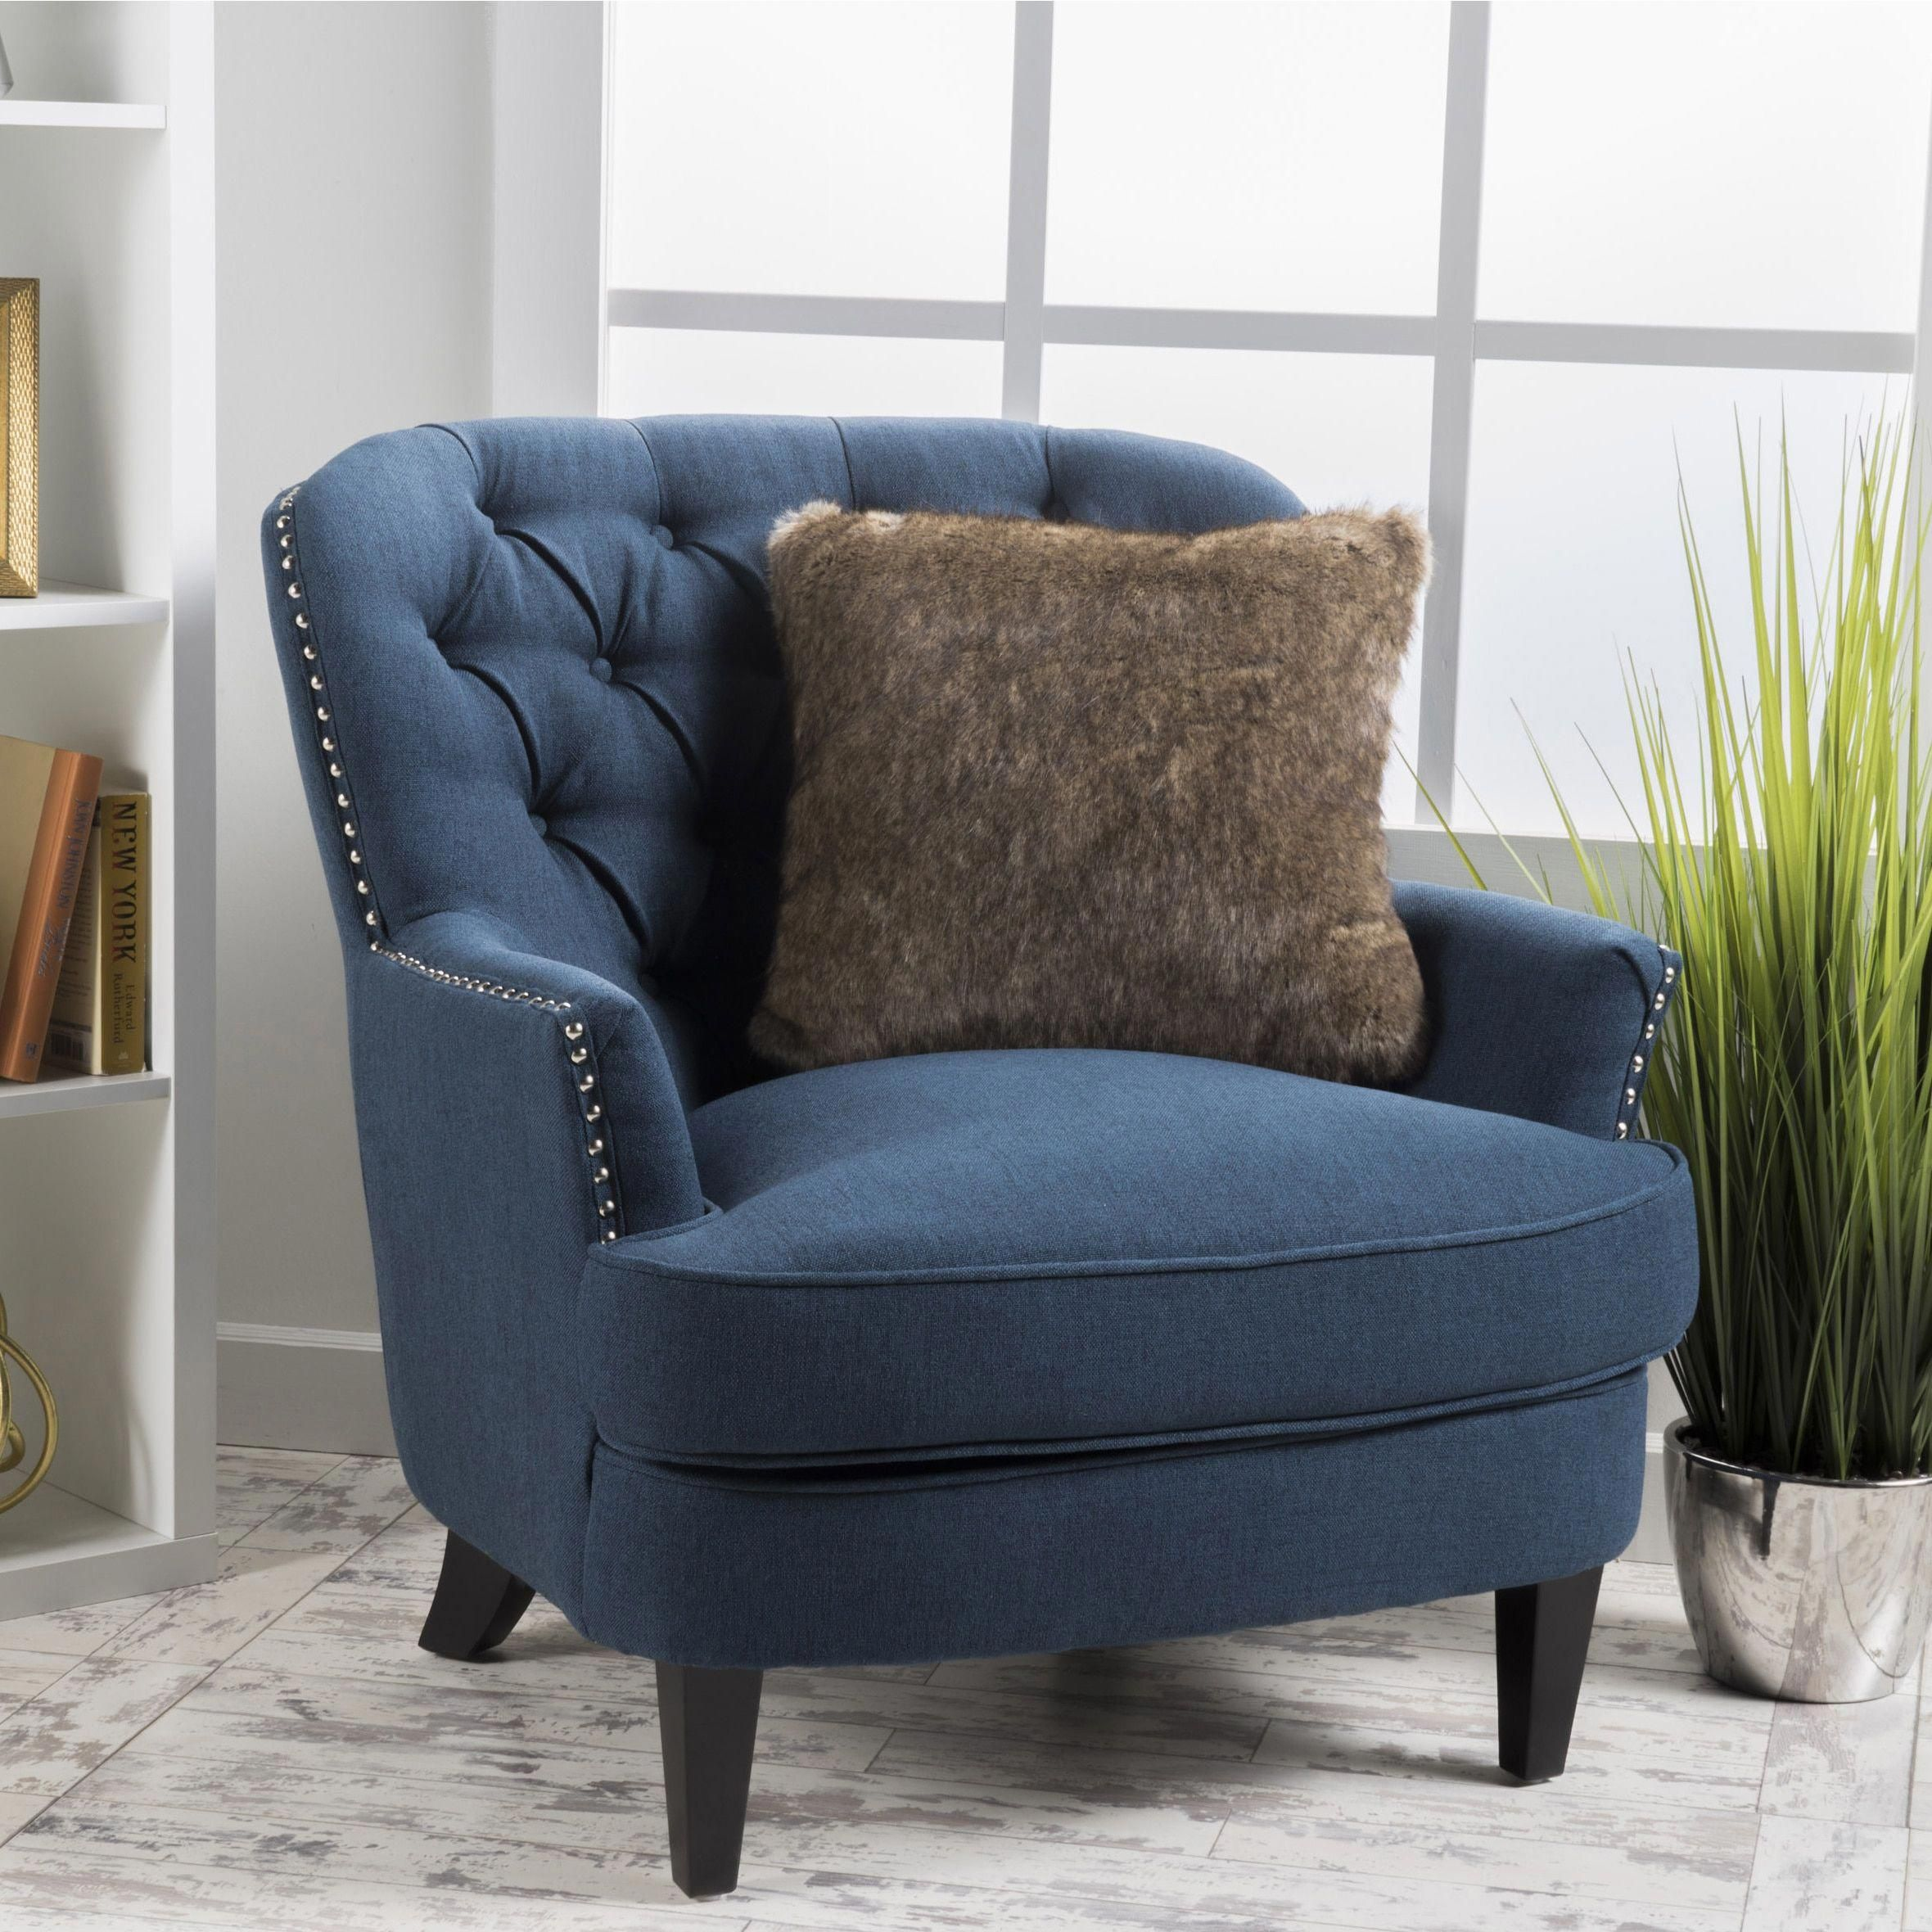 Tafton Club Chair Swivel Hong Kong Tufted Oversized Fabric By Christopher Knight Home Dark Blue Clubchairs